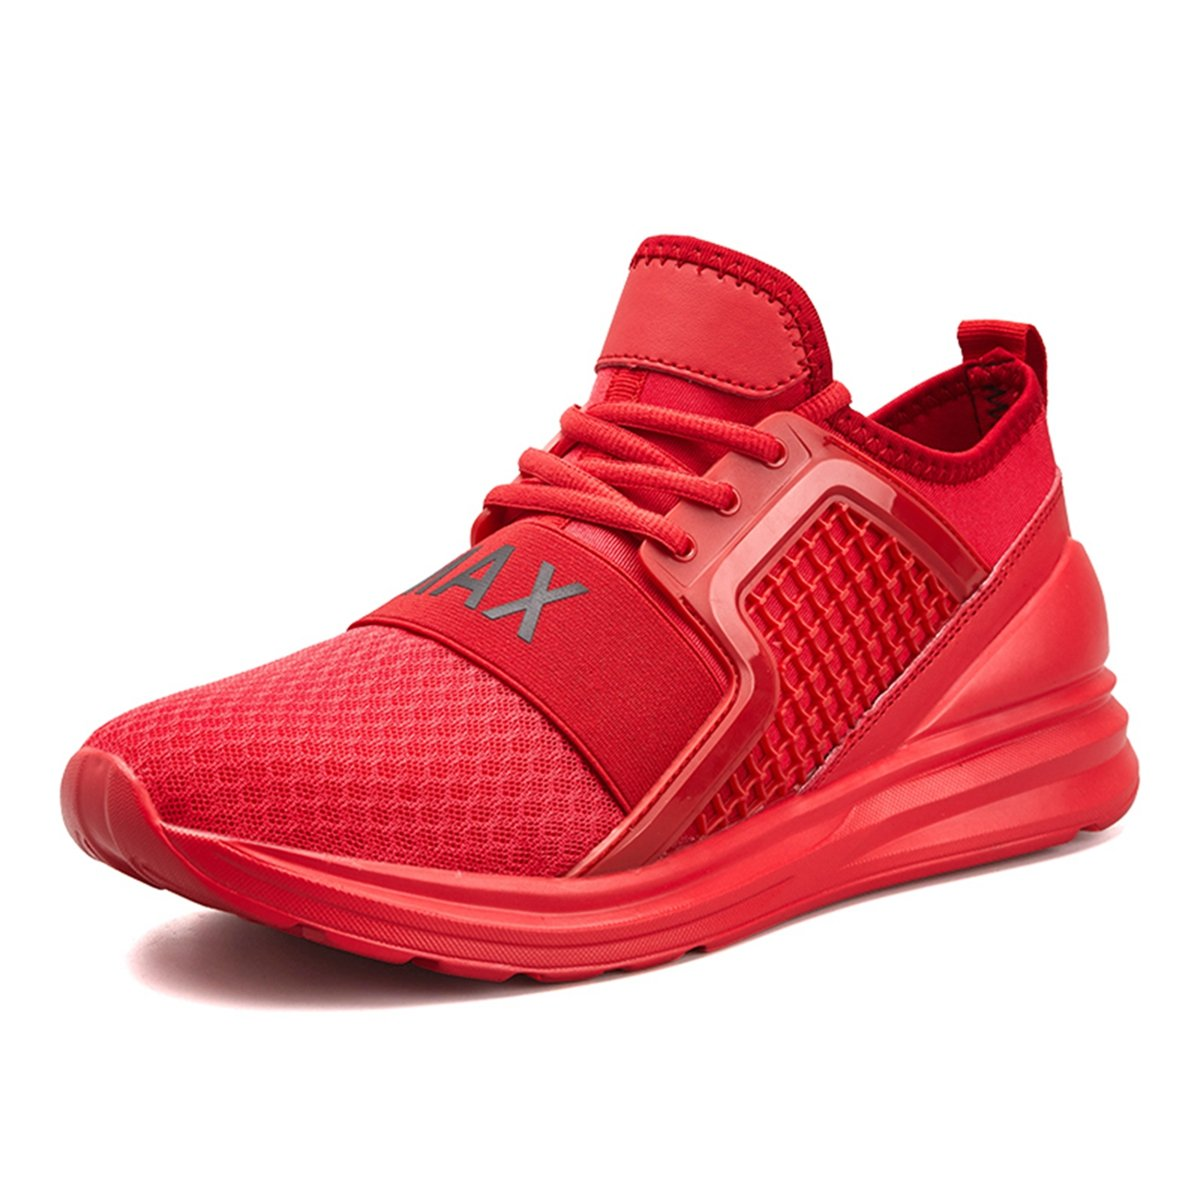 Resonda Mens Running Shoes Casual Fashion Sneakers Lightweight Athletic Walking Sport Shoes for Men B07FF1BWTR 10 B(M) US|02-red